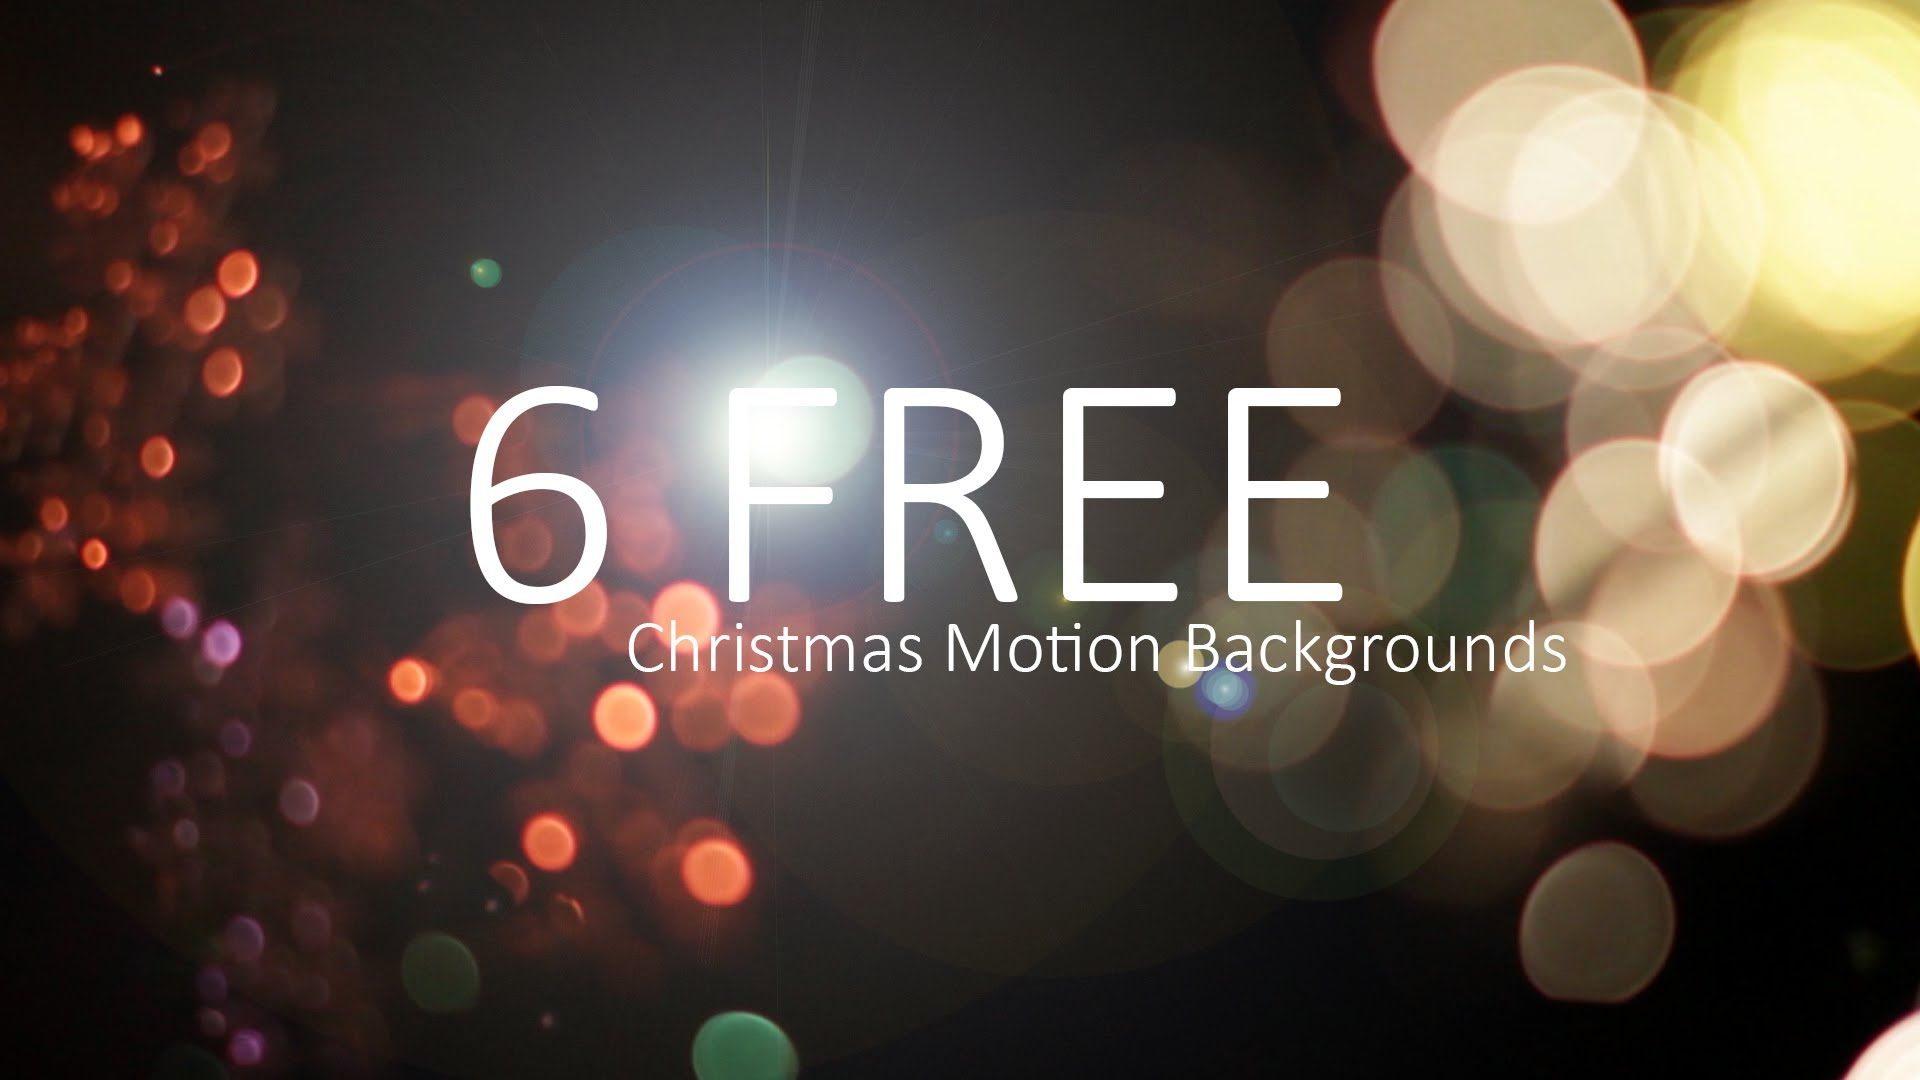 Pin by Motion Backgrounds on Seasonal | Motion backgrounds